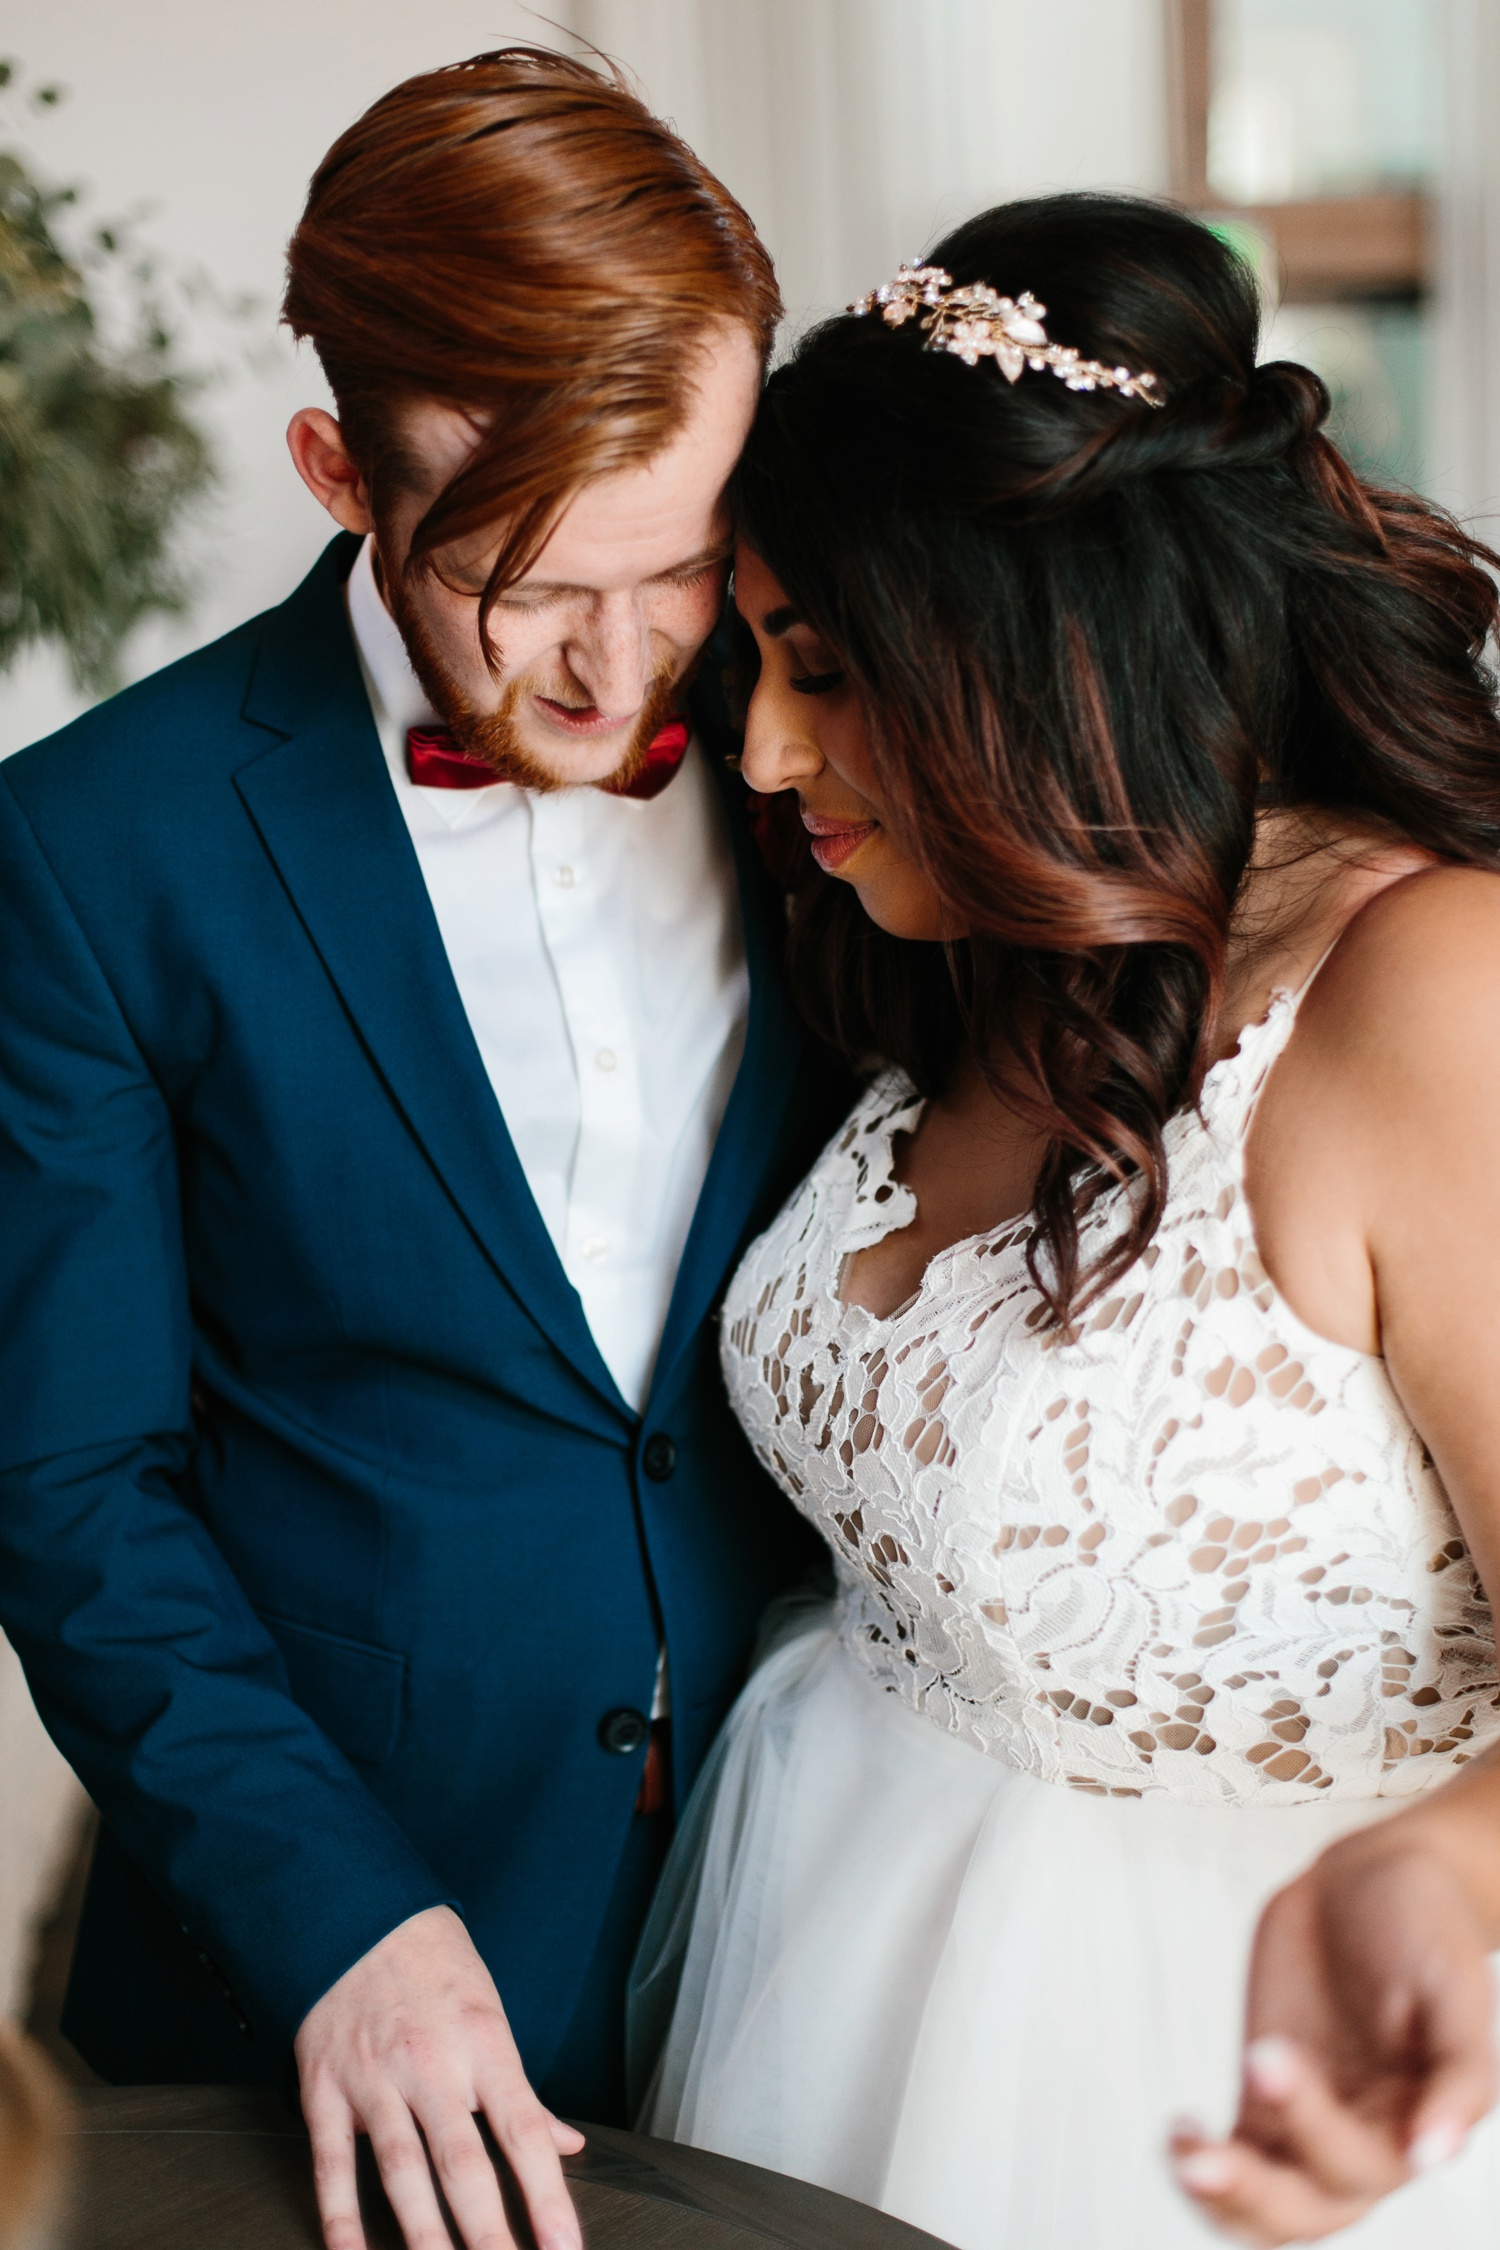 Grant + Lysette | a vibrant, deep burgundy and navy, and mixed metals wedding at Hidden Pines Chapel by North Texas Wedding Photographer Rachel Meagan Photography 101